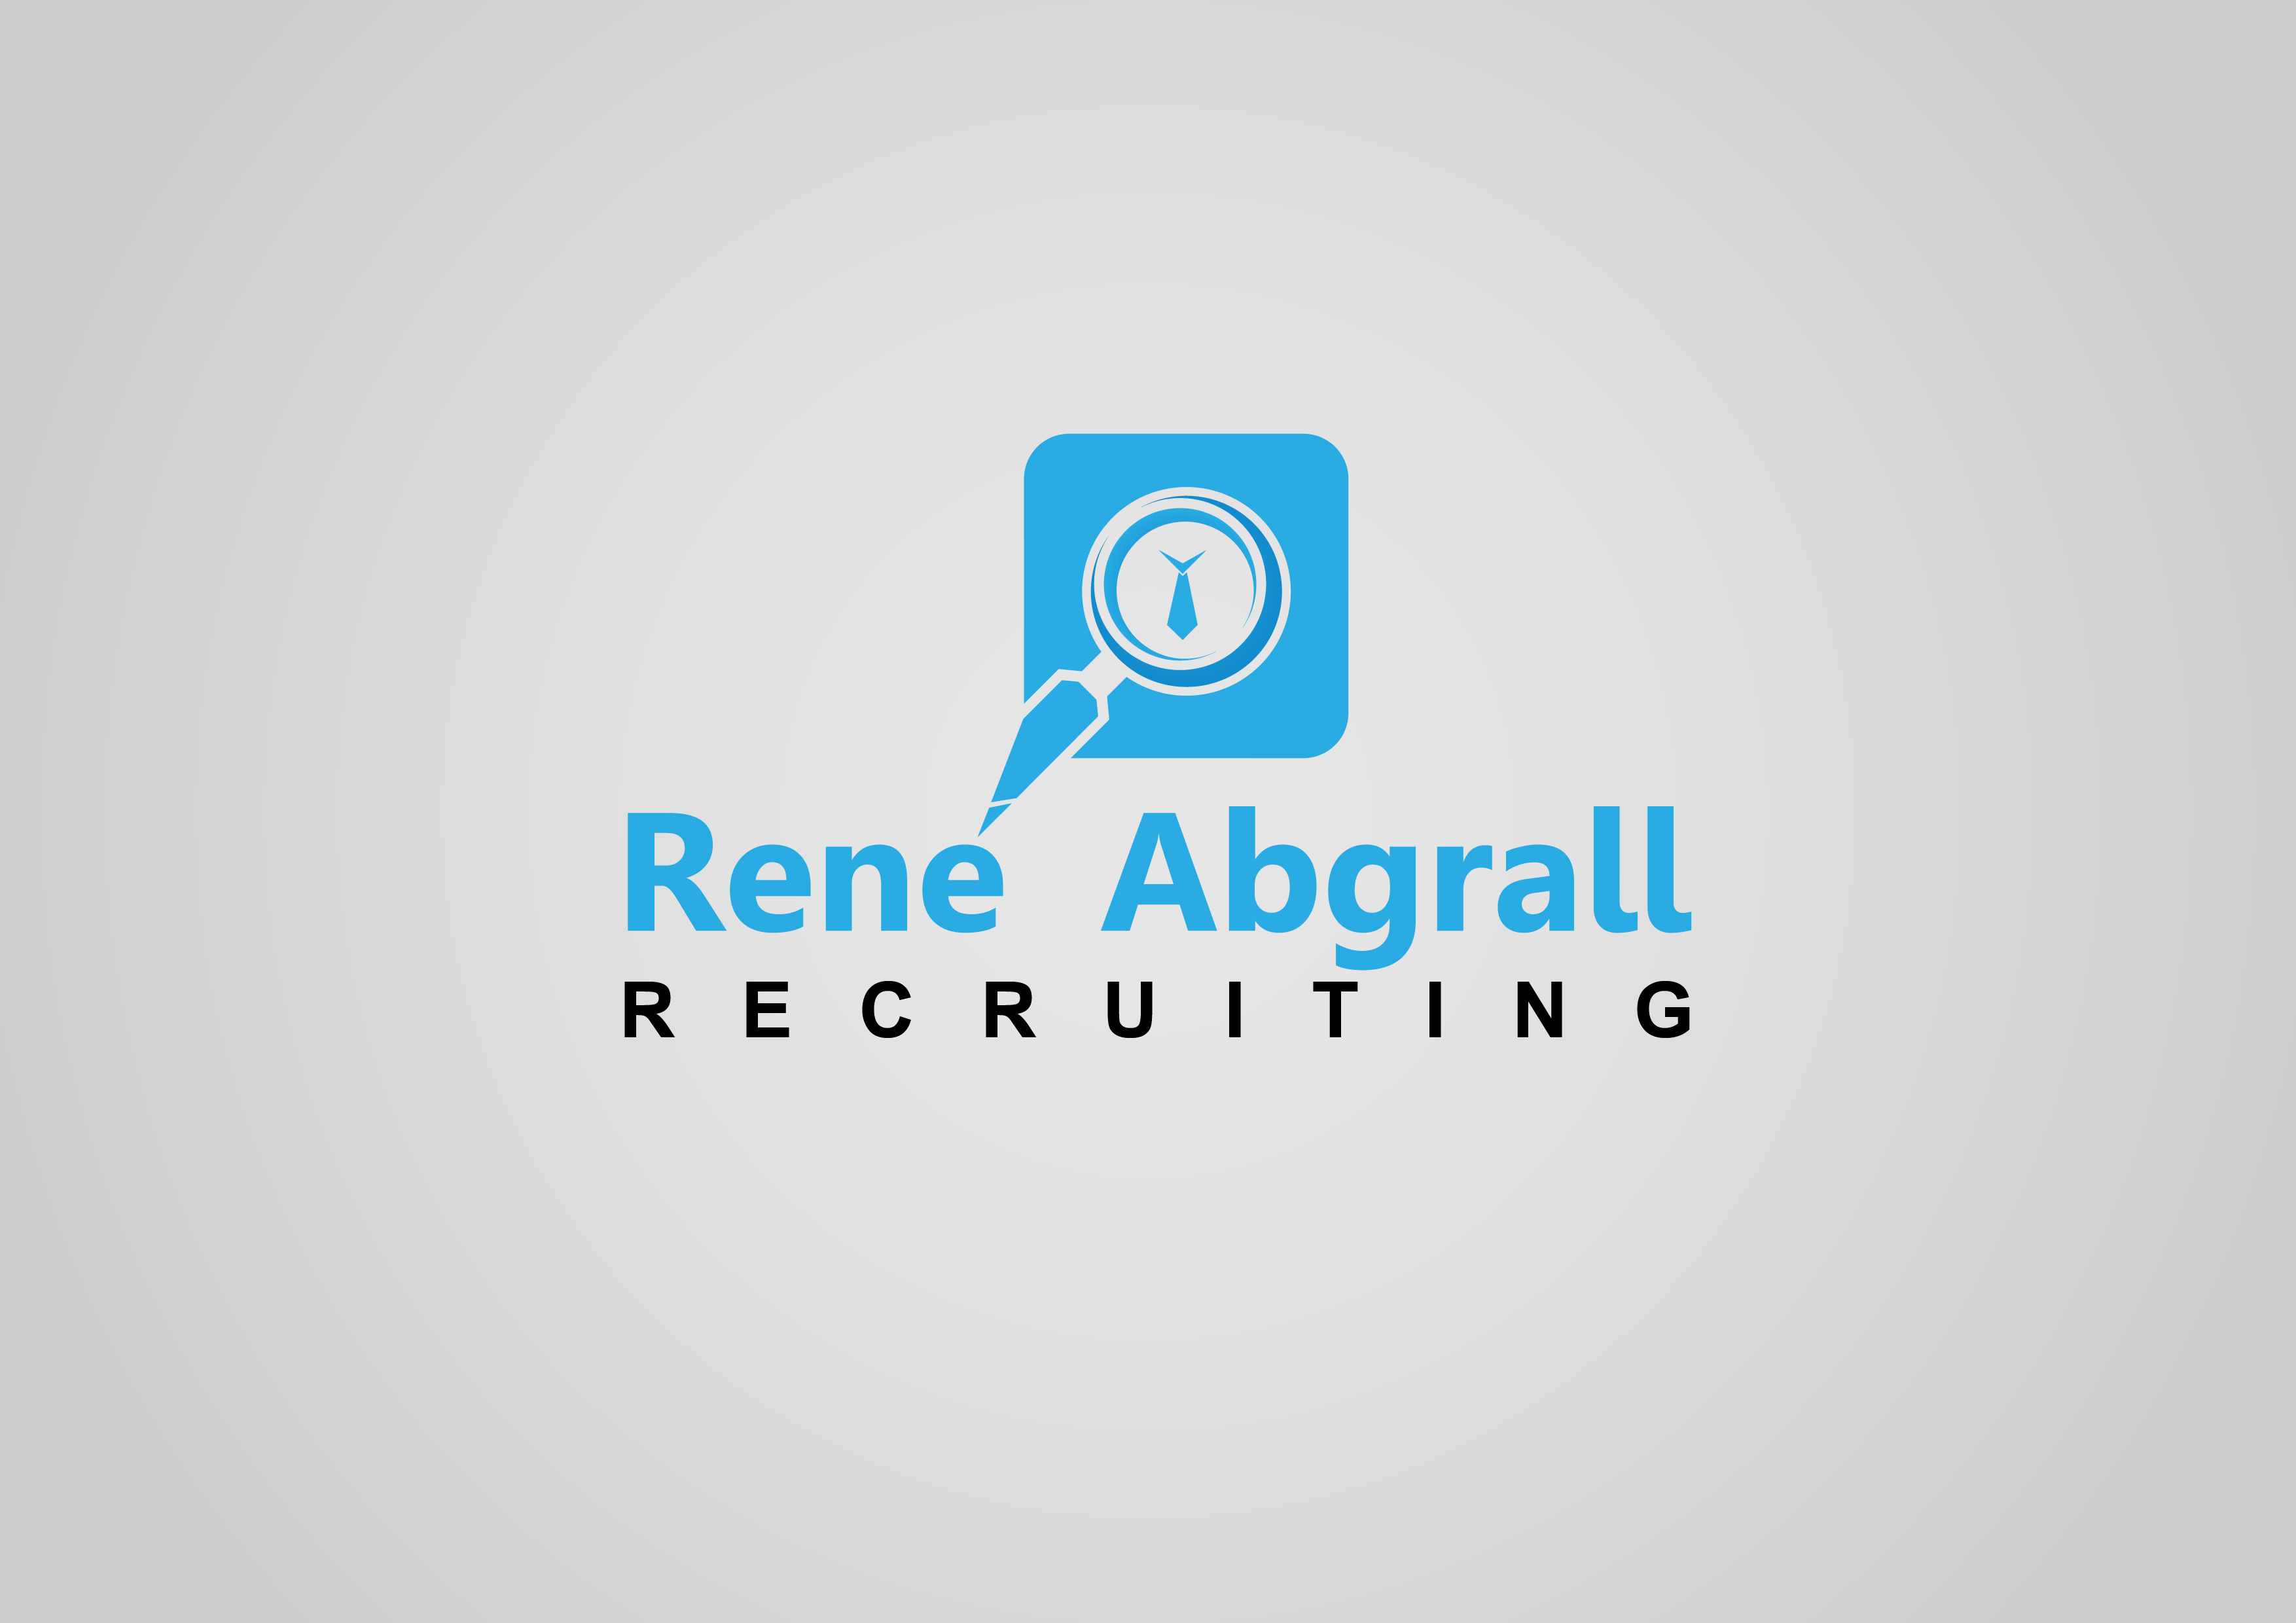 Logo Design by 3draw - Entry No. 10 in the Logo Design Contest Artistic Logo Design for René Abgrall Recruiting.